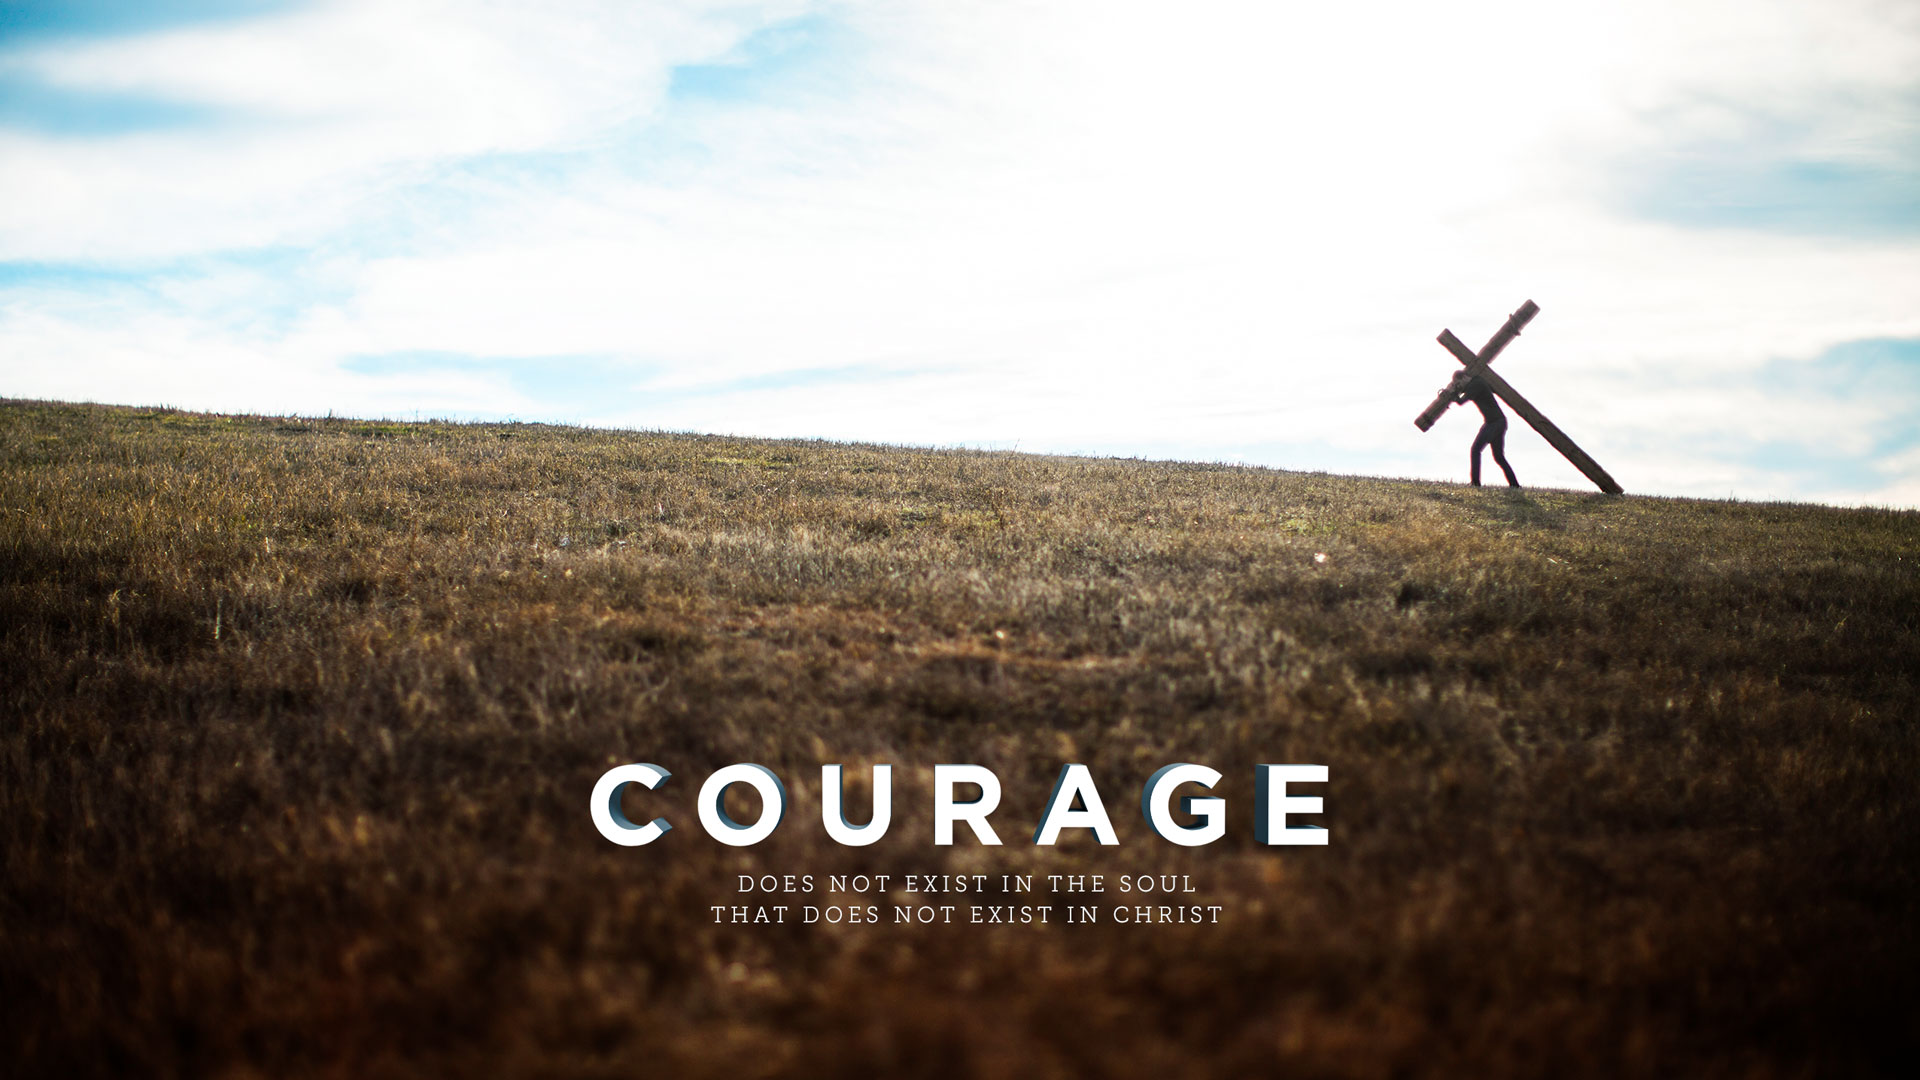 Wednesday Wallpaper Courage In Christ